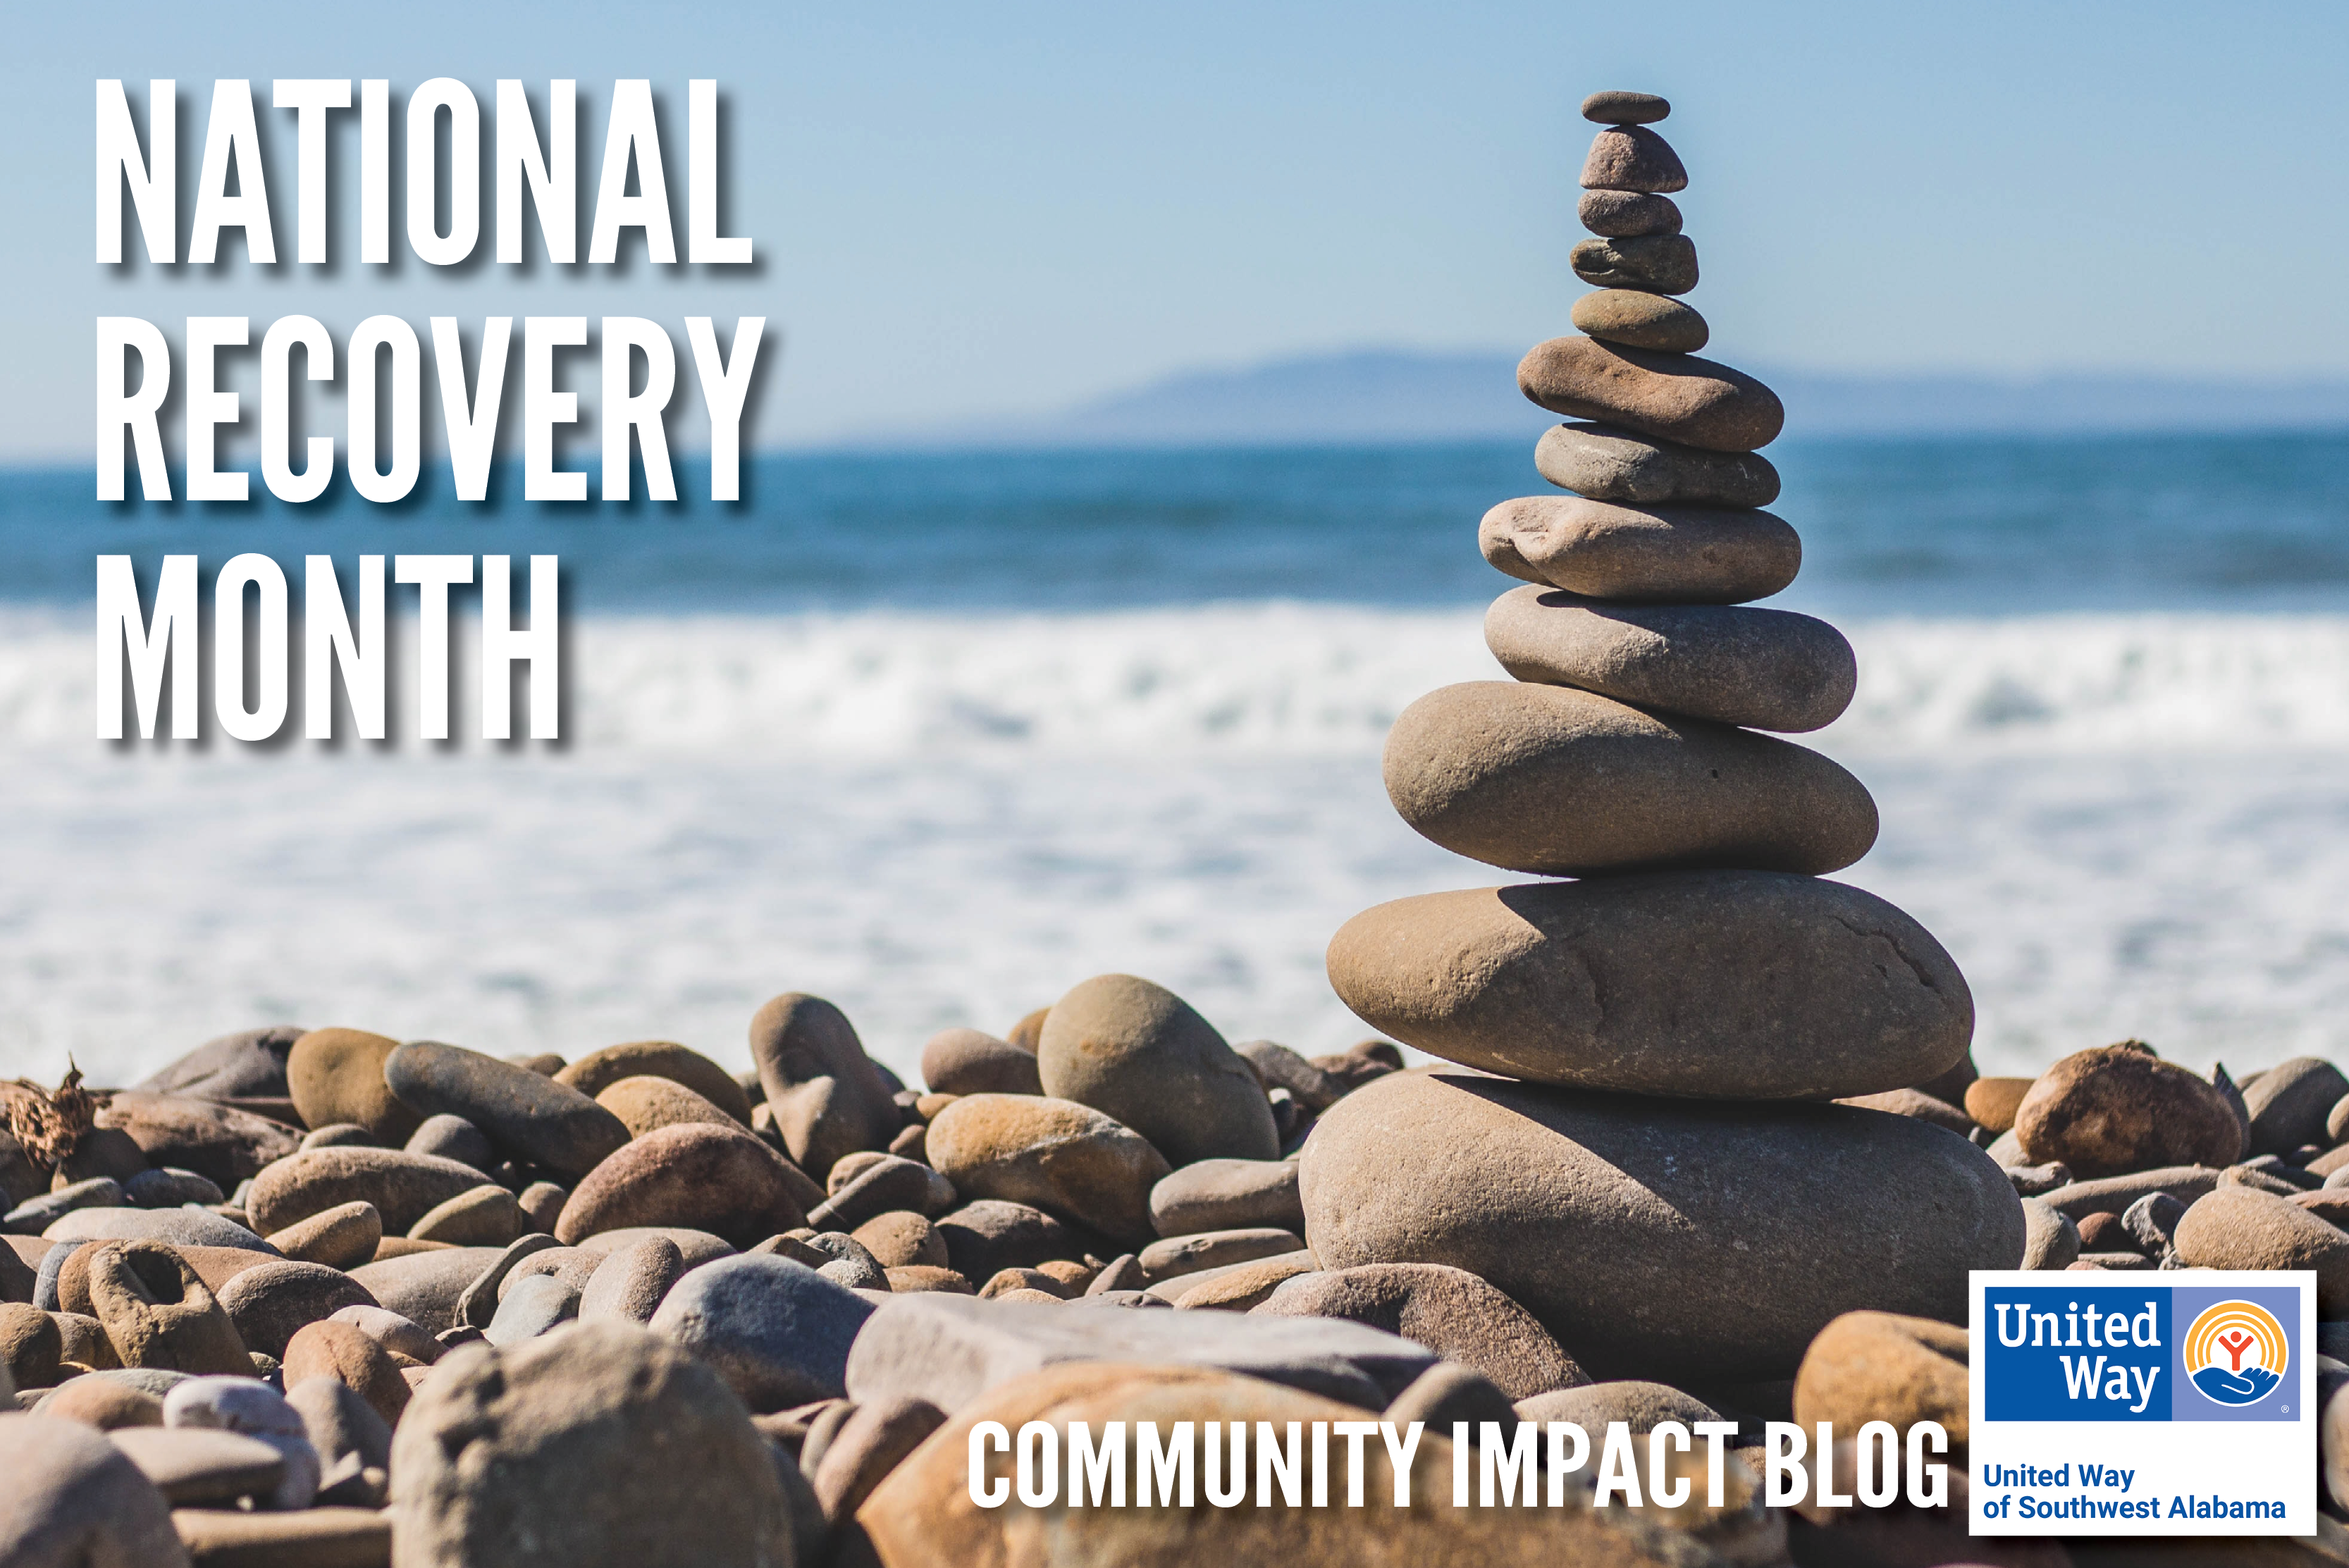 September CI Blog - National Recovery Month